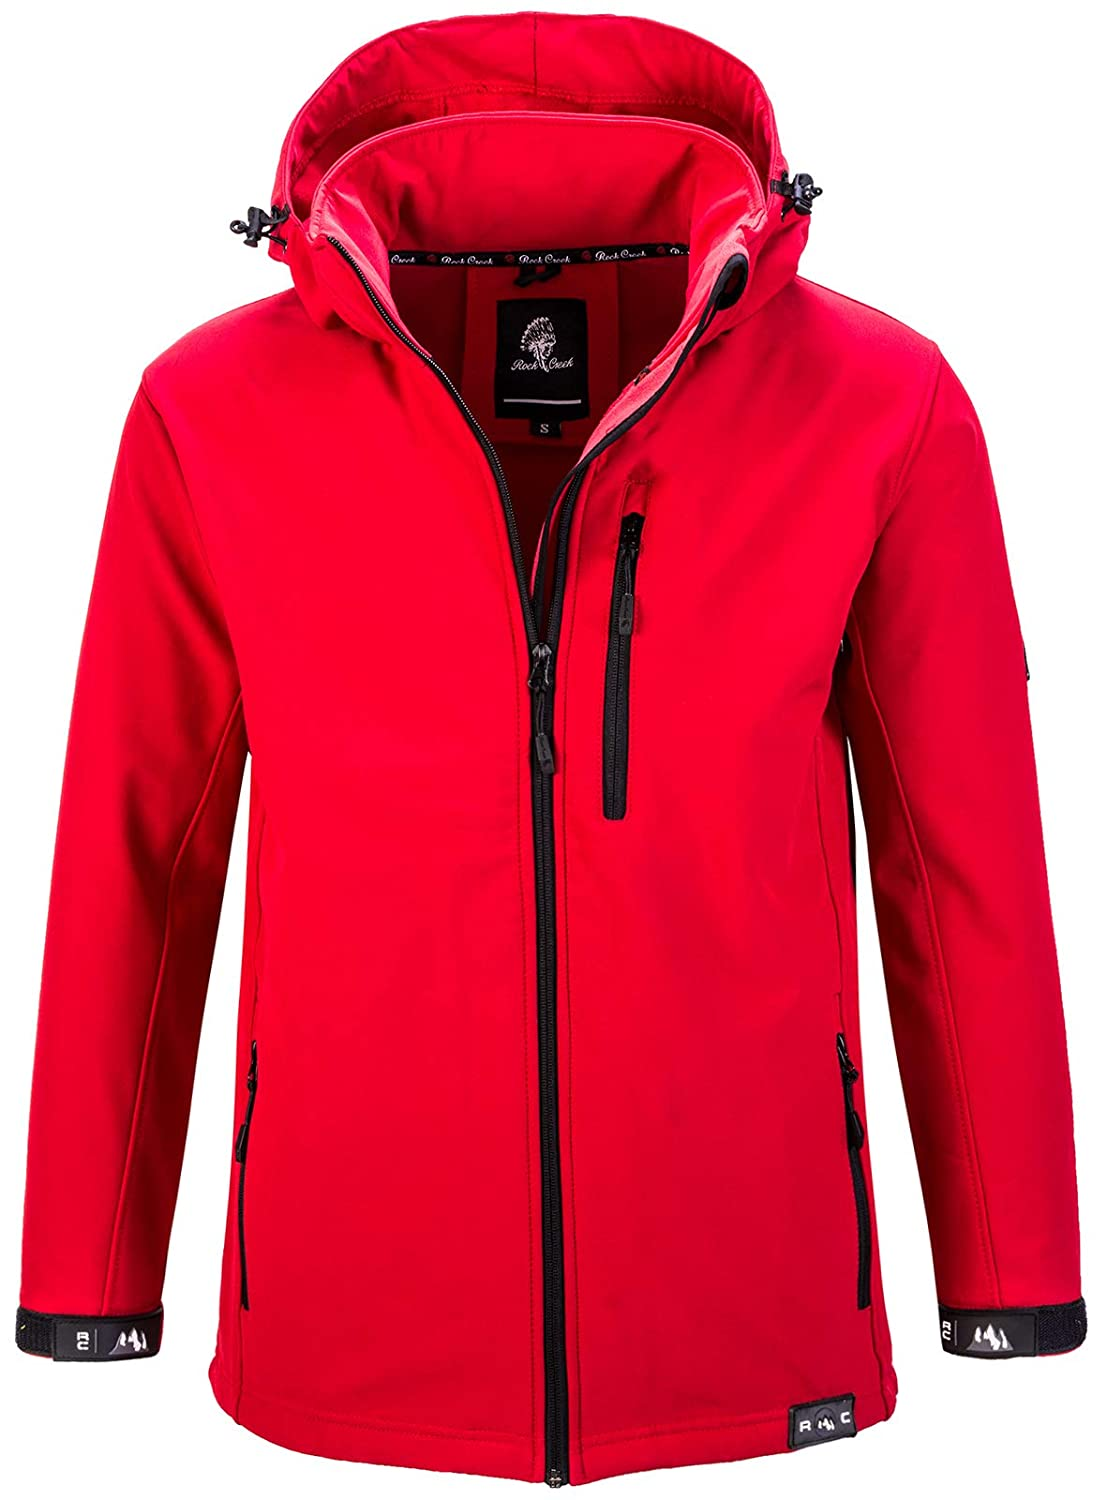 Rock Creek Chaqueta Softshell Hombre Outdoor H-168